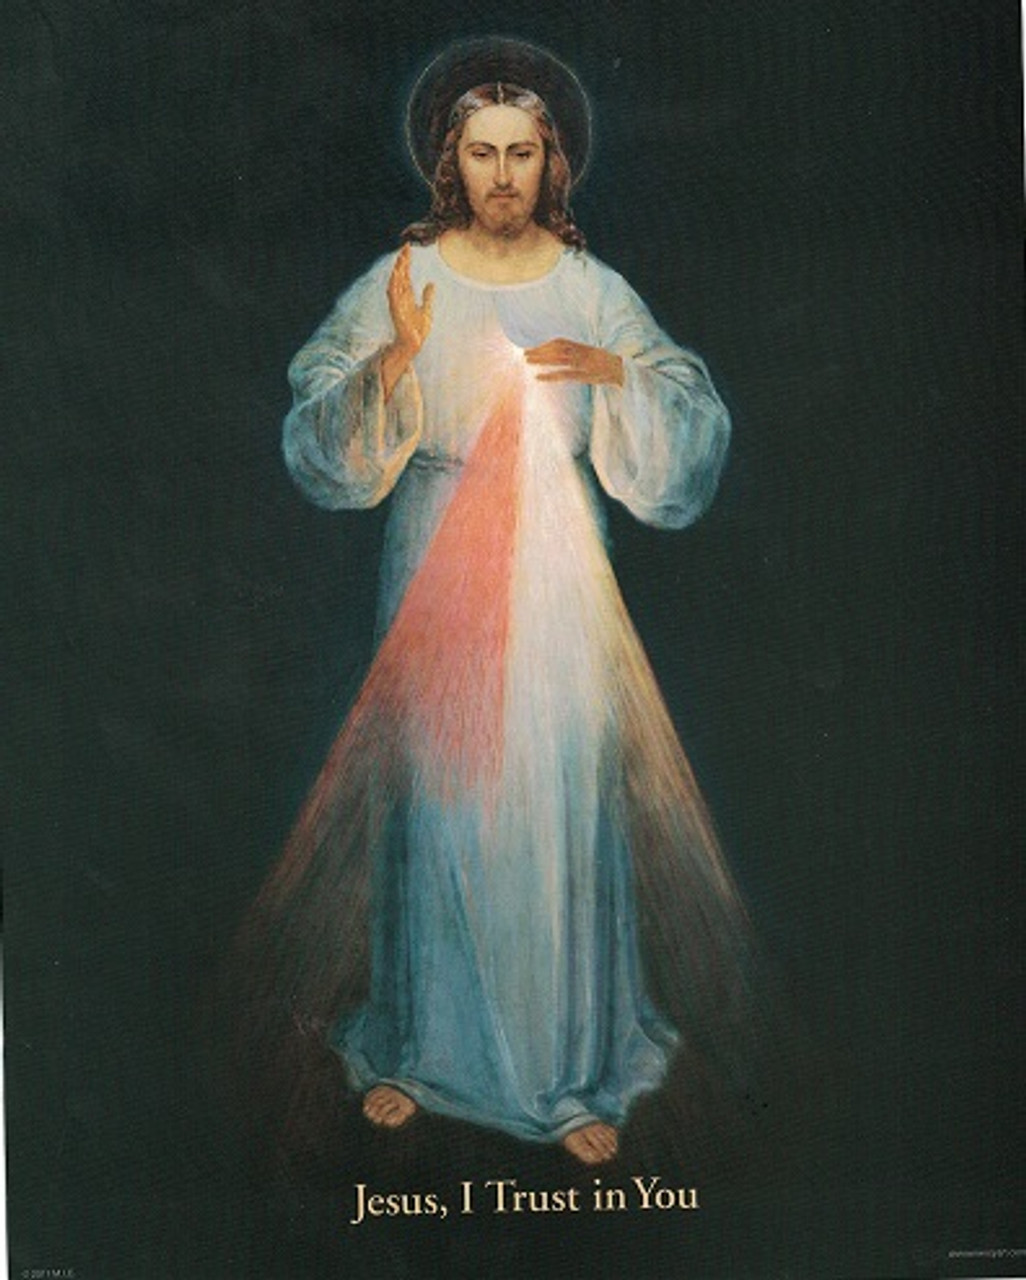 Inexpensive Divine Mercy 8 inch by 10 inch image -- Black Background -Original Image